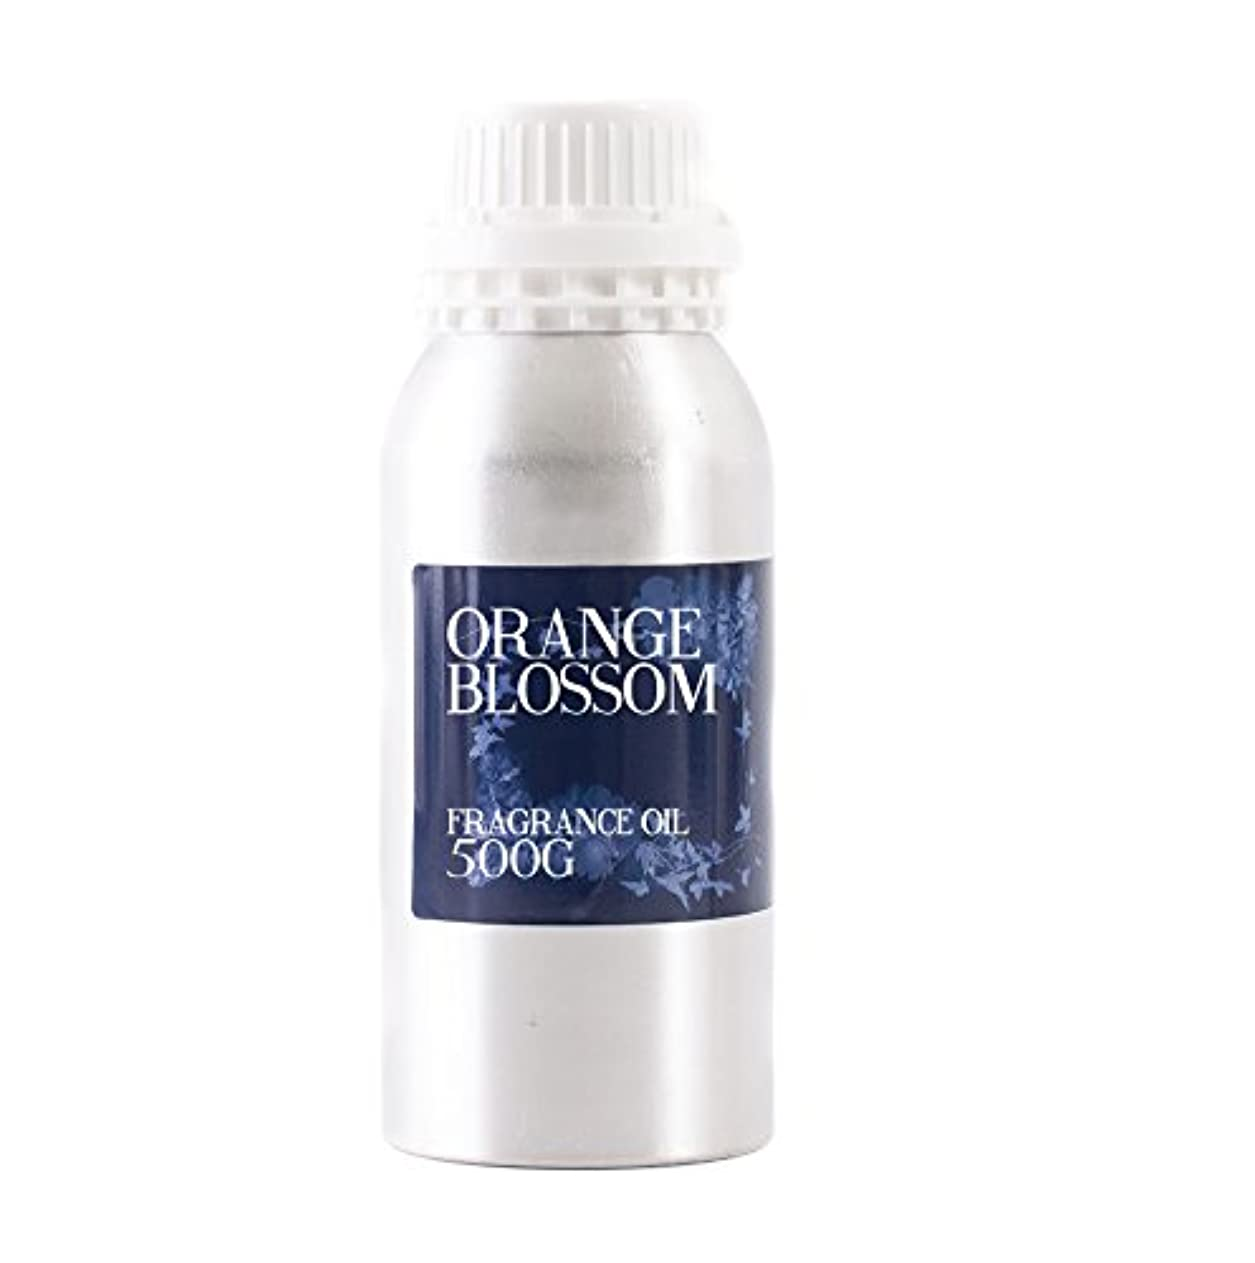 ナンセンスキャンディーおいしいMystic Moments | Orange Blossom Fragrance Oil - 500g